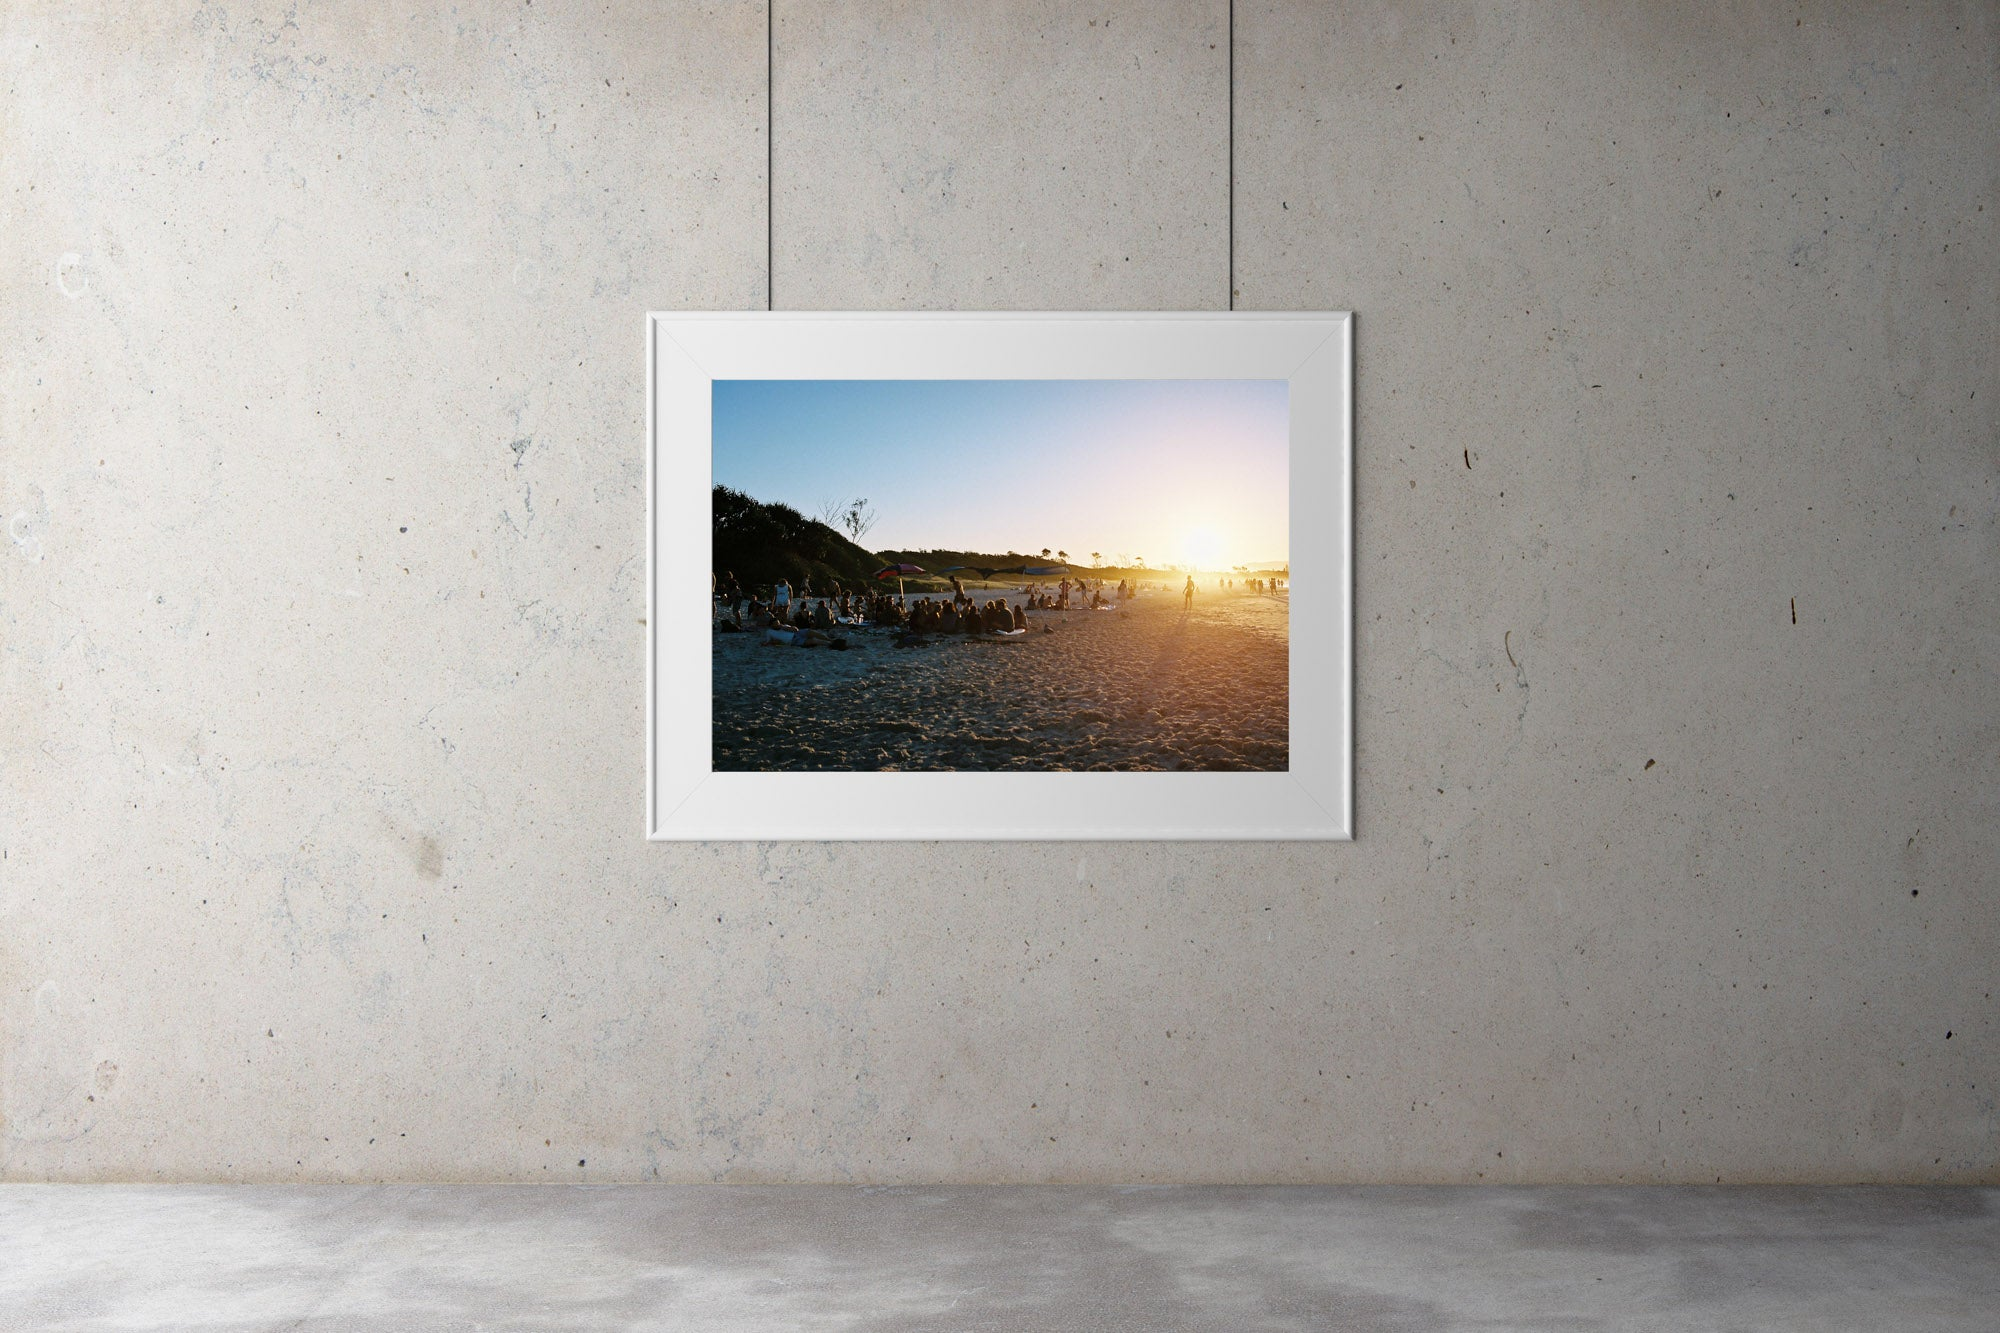 People sit in groups on the beach at sunset in Byron bay. The sun is low & the beach & blue water looks warm.  People are walking in the distance, blue calm water, blue sky.  Artwork Prints, wallart,  Photographic prints,  Framed artwork,  Australian  Photography, wall art, beach prints, coastal prints, ocean prints,  Film photography, Vintage photo, style  Interior design, Pictures Abstract film photography, photography art, Australia, sun, beach,